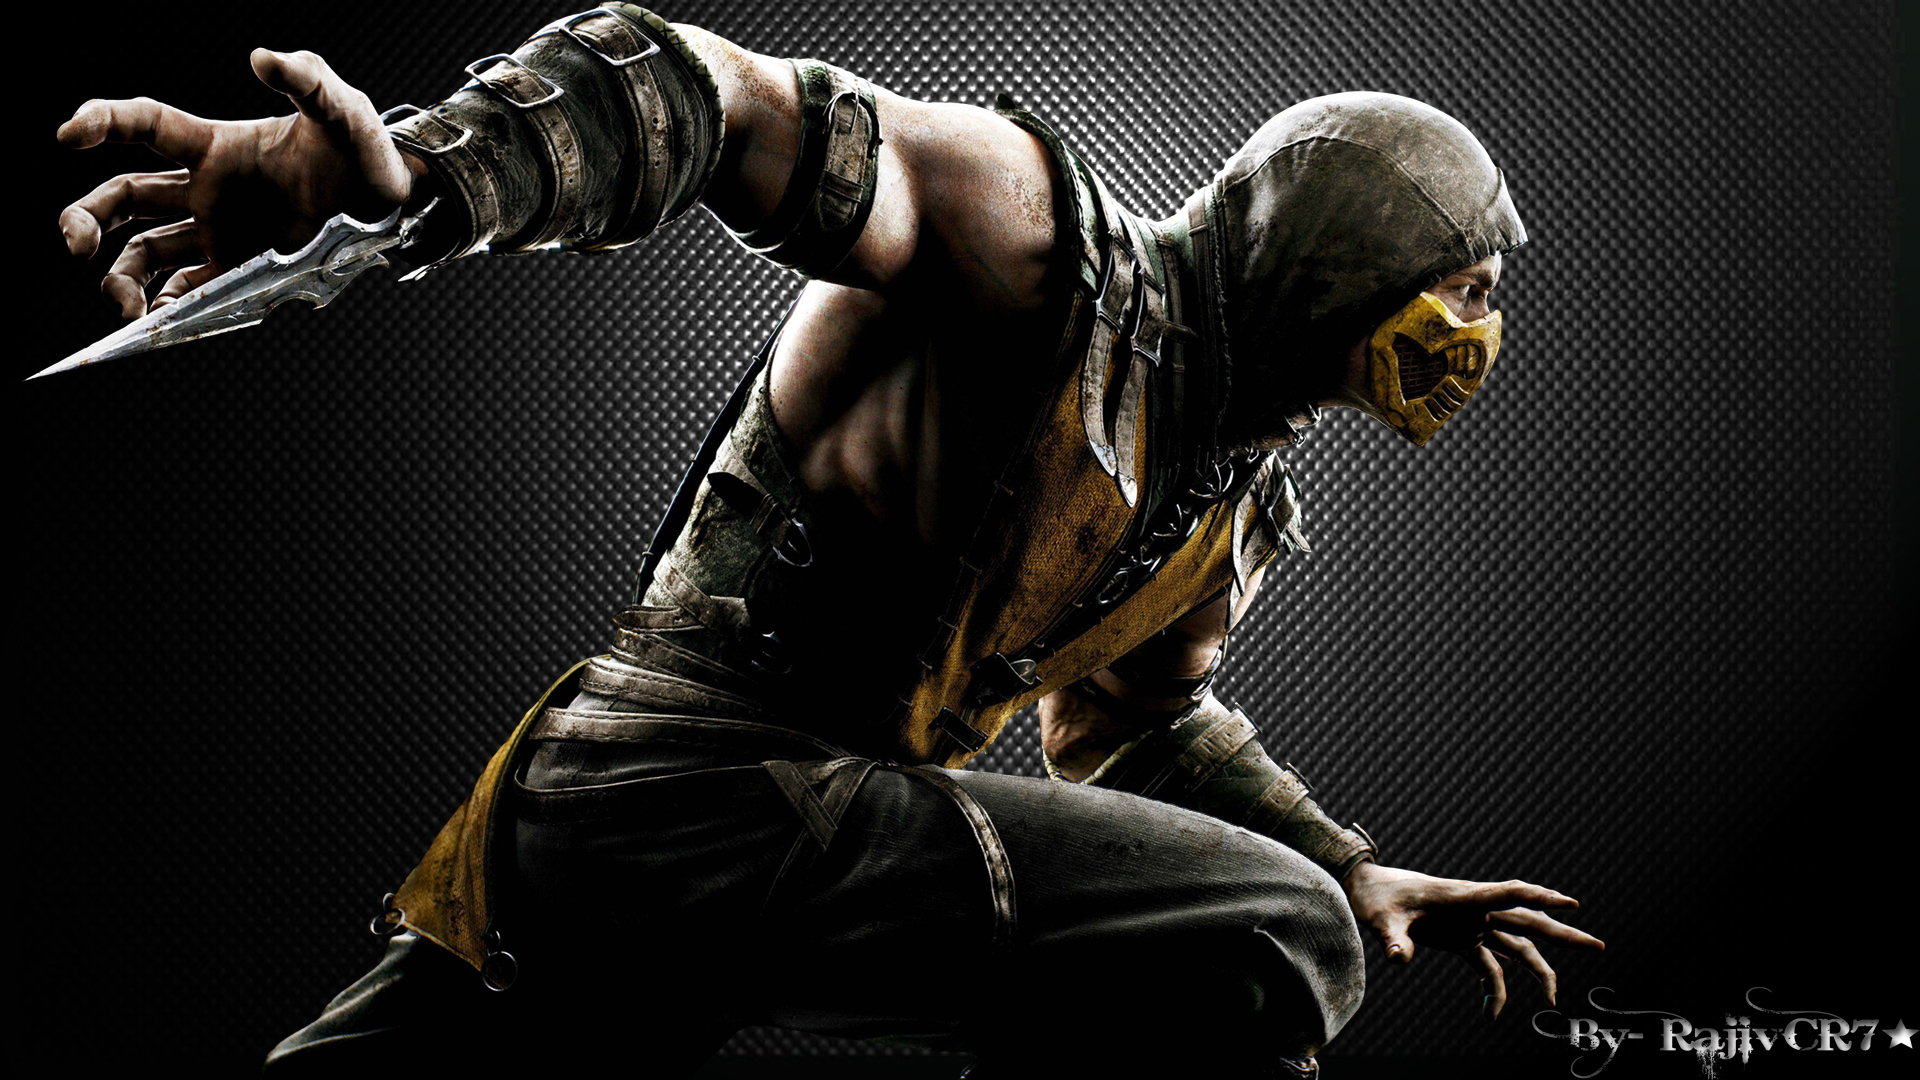 Mortal Kombat X HD Wallpaper 2 by RajivCR7 1920x1080